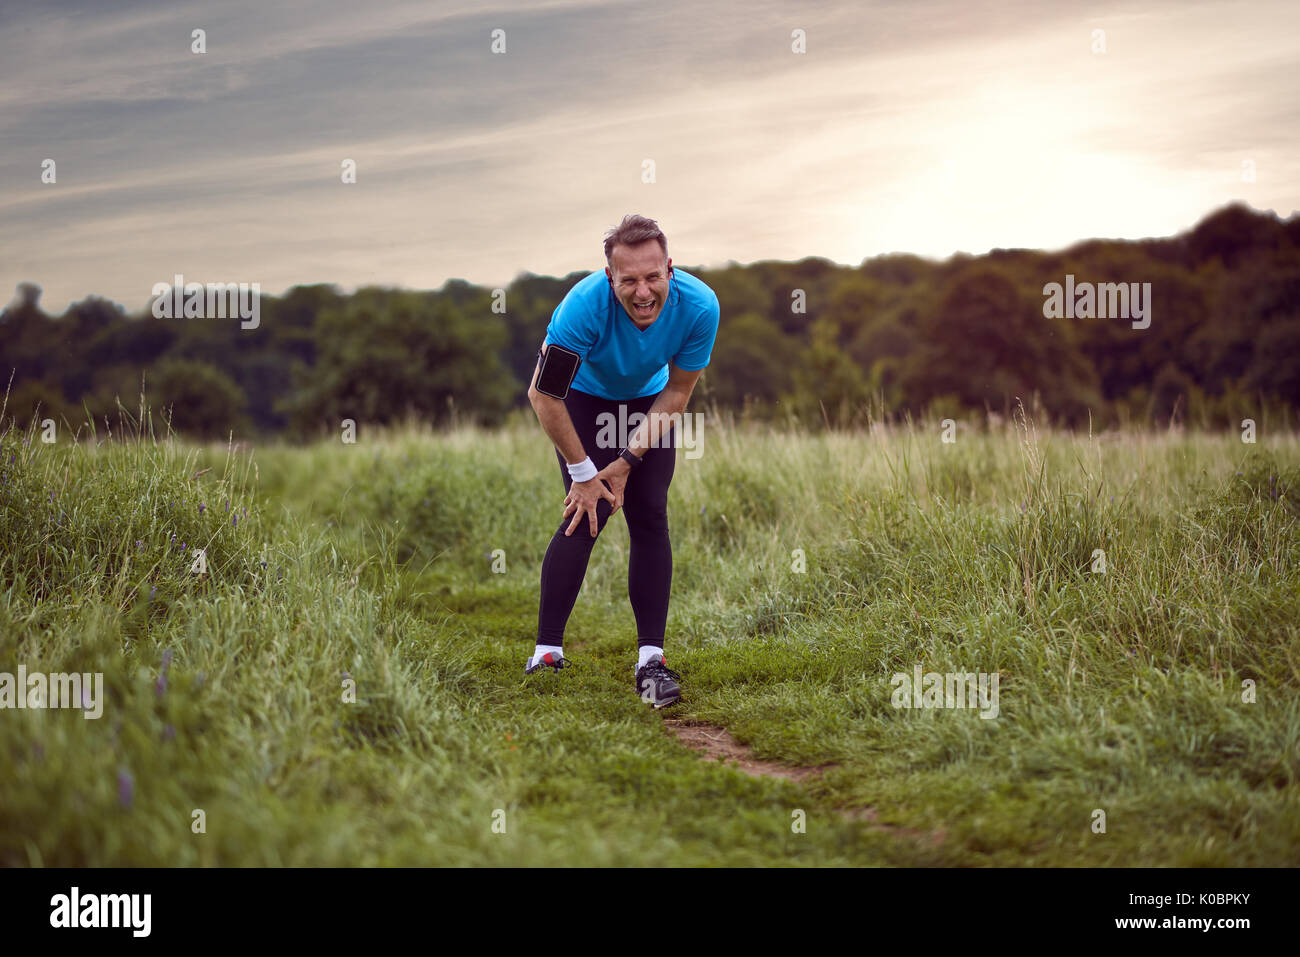 An exercising man in fit wear while running outdoors, stop to clutch an injured knee. - Stock Image